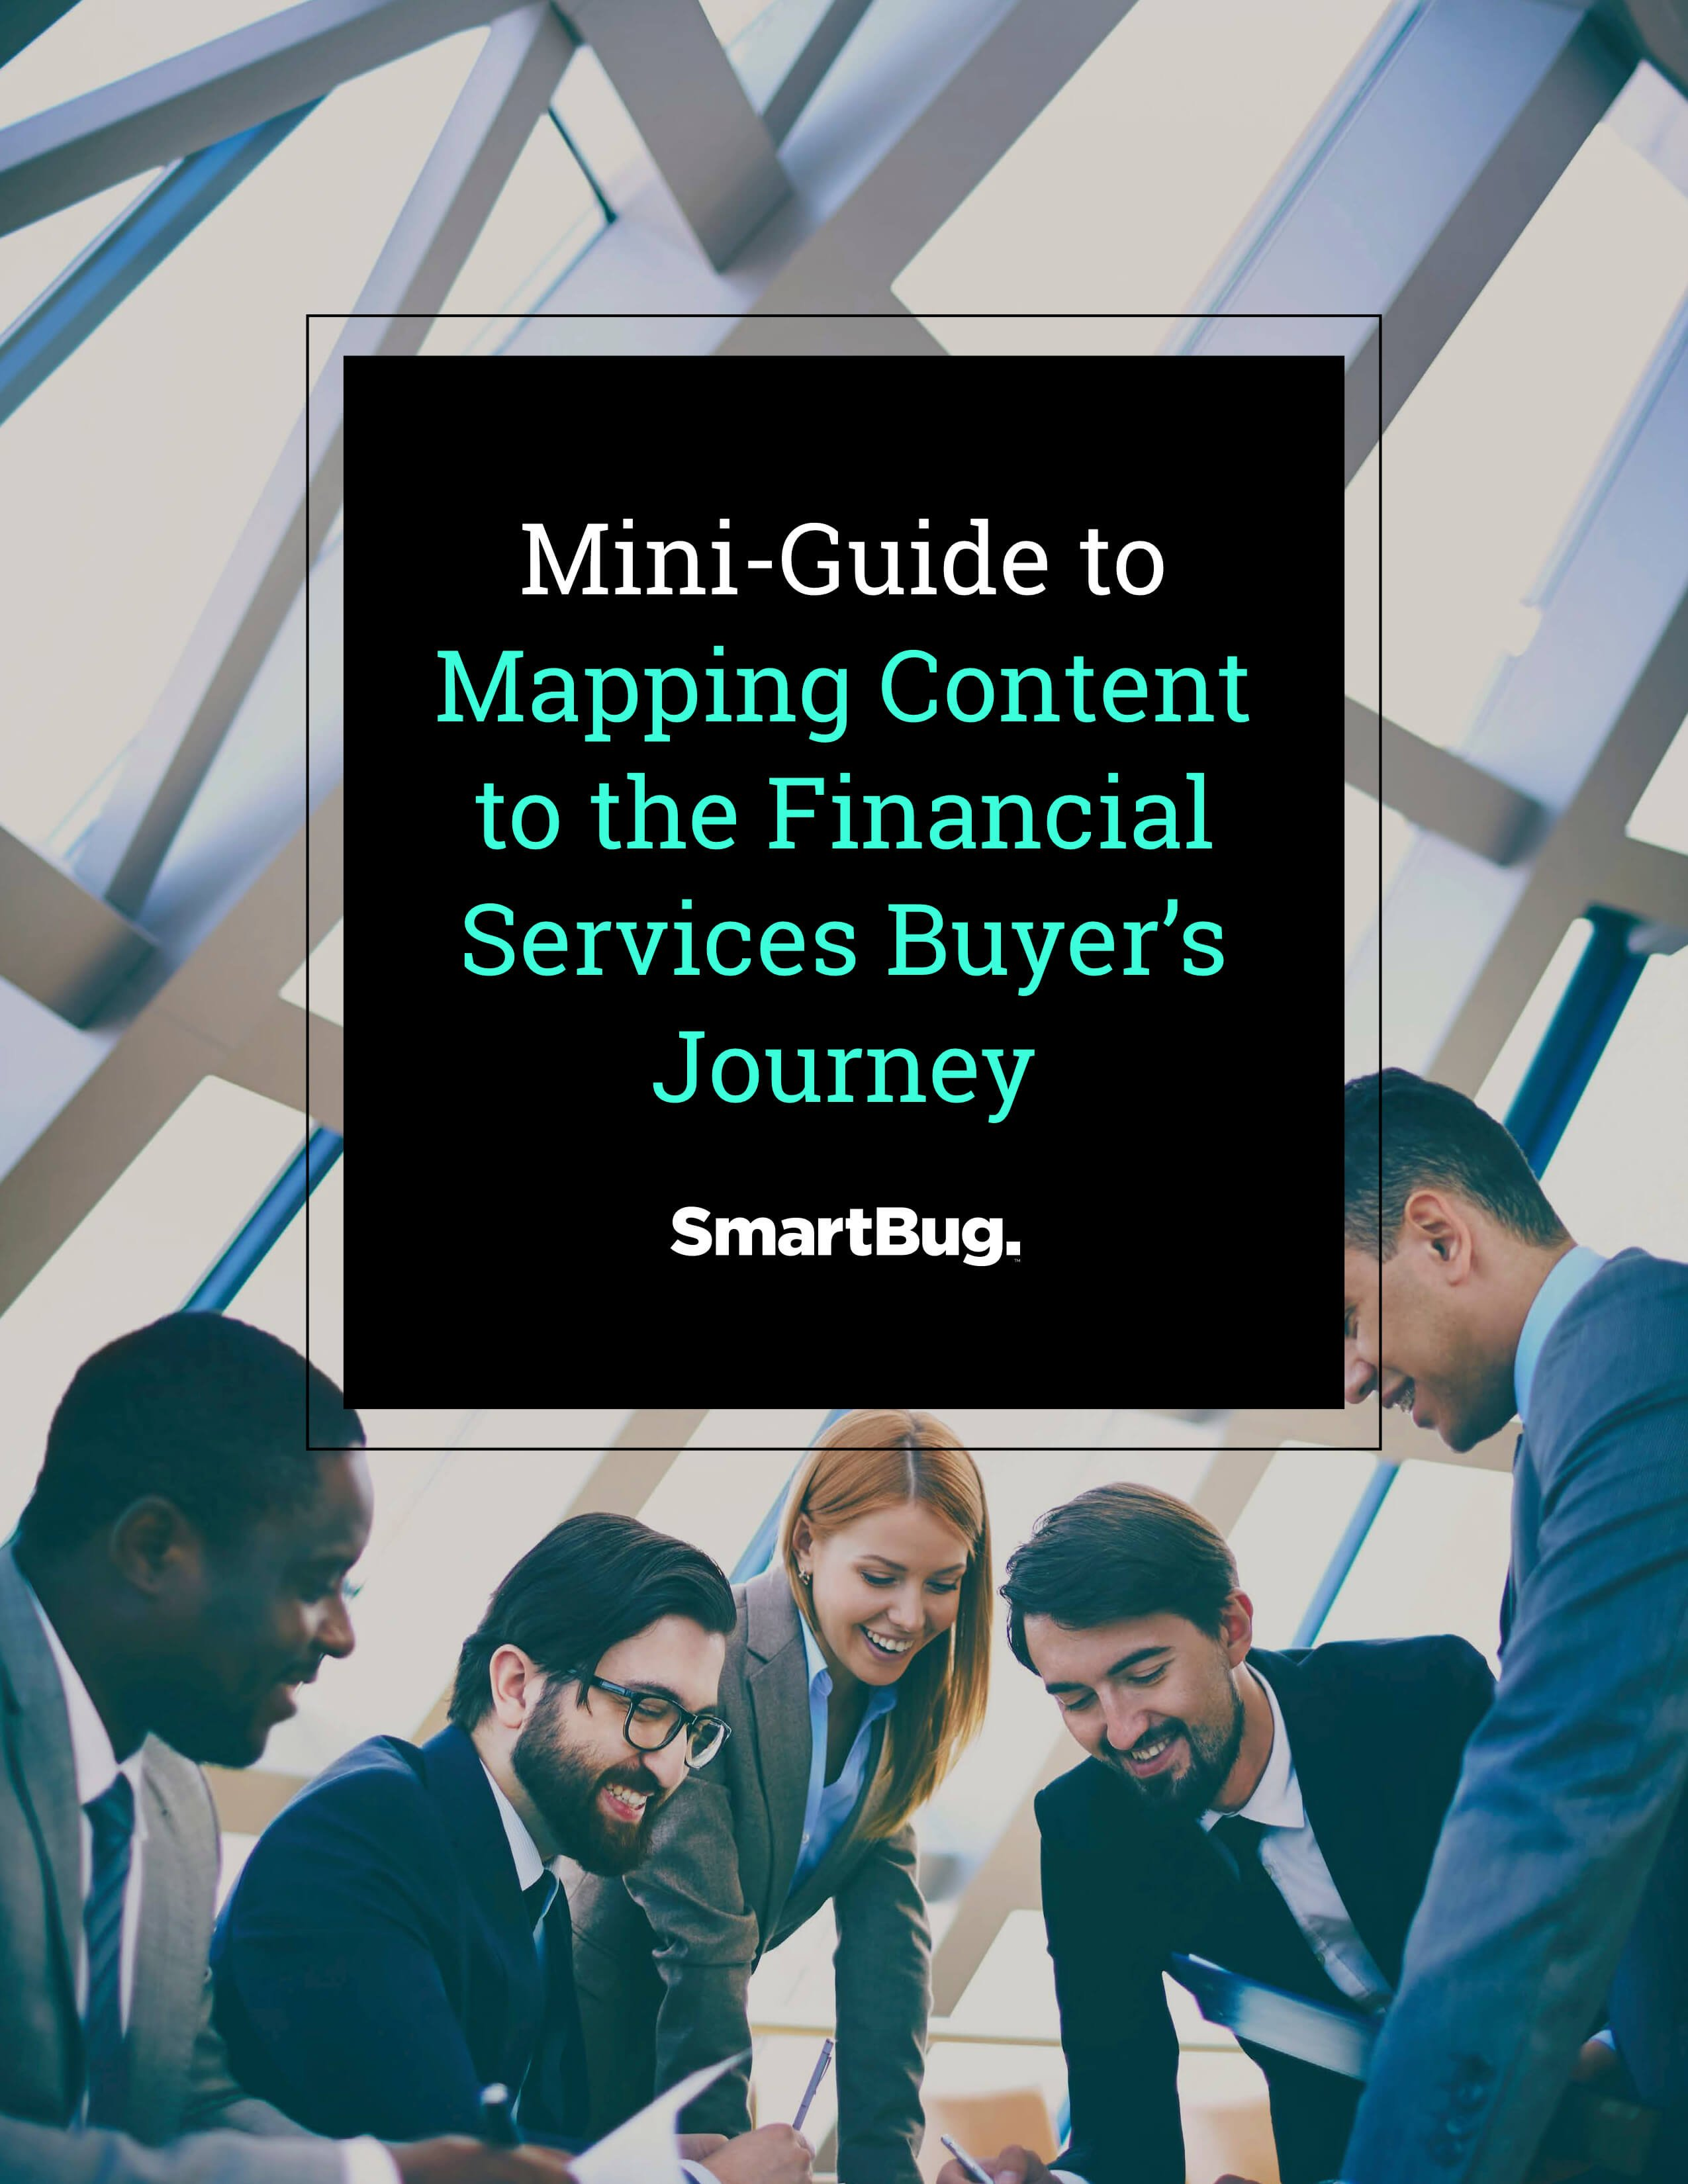 Mini Guide to Mapping Content to the Financial Services Buyer's Journey